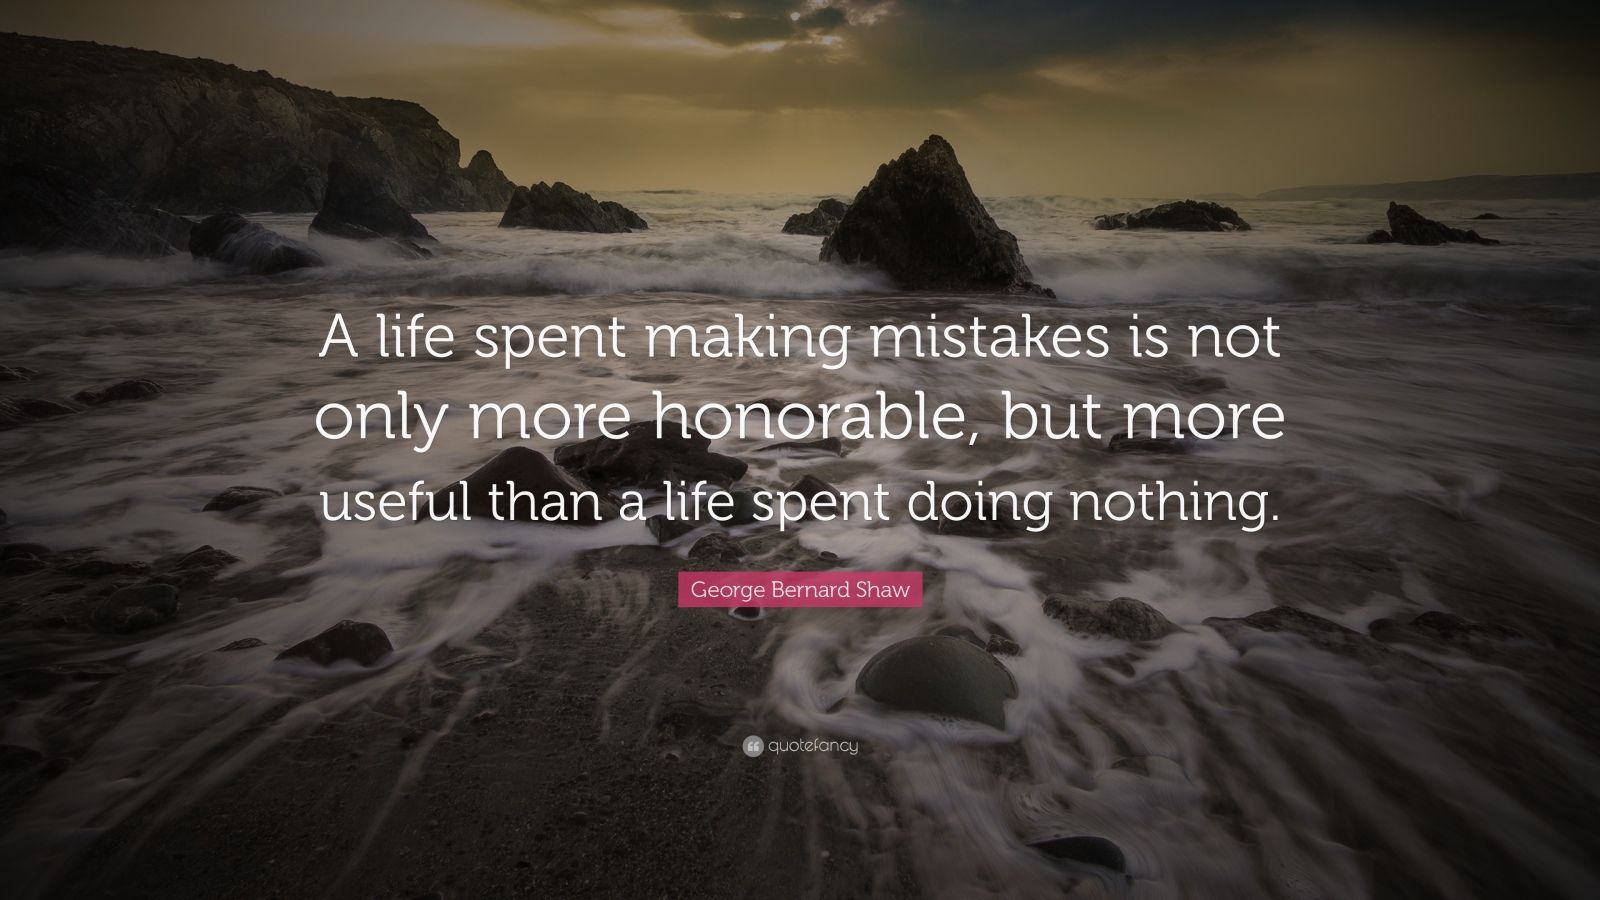 a life making mistakes is not only more honorable George bernard shaw — 'a life spent making mistakes is not only more honorable, but more useful than a life spent doing nothing inspiring george bernard shaw quotes beware of false knowledge it is more dangerous than ignorance inspiring george bernard shaw quotes.